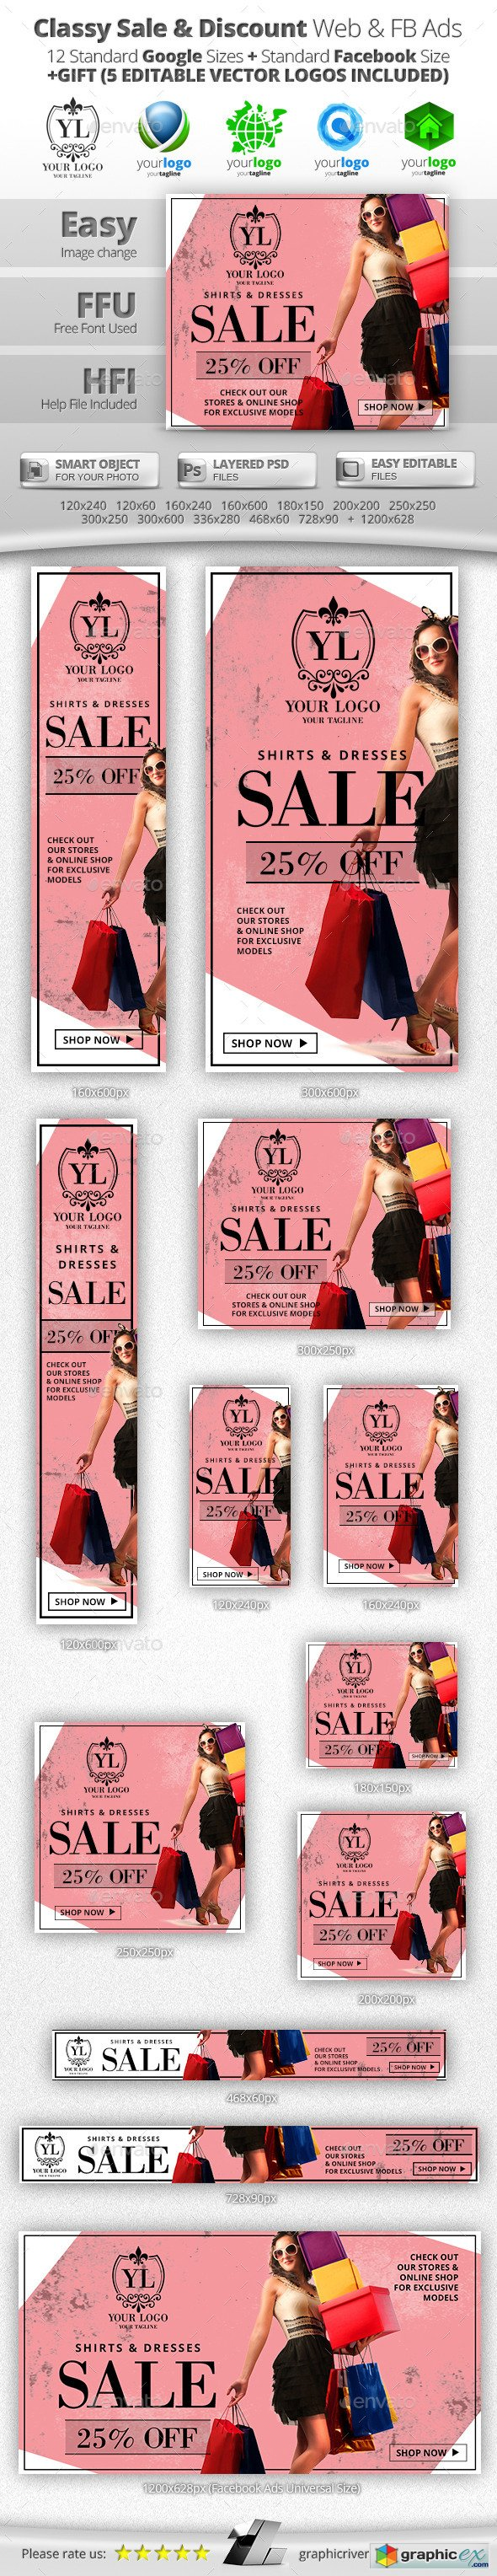 Classy Sale & Discount Web & Facebook Banners